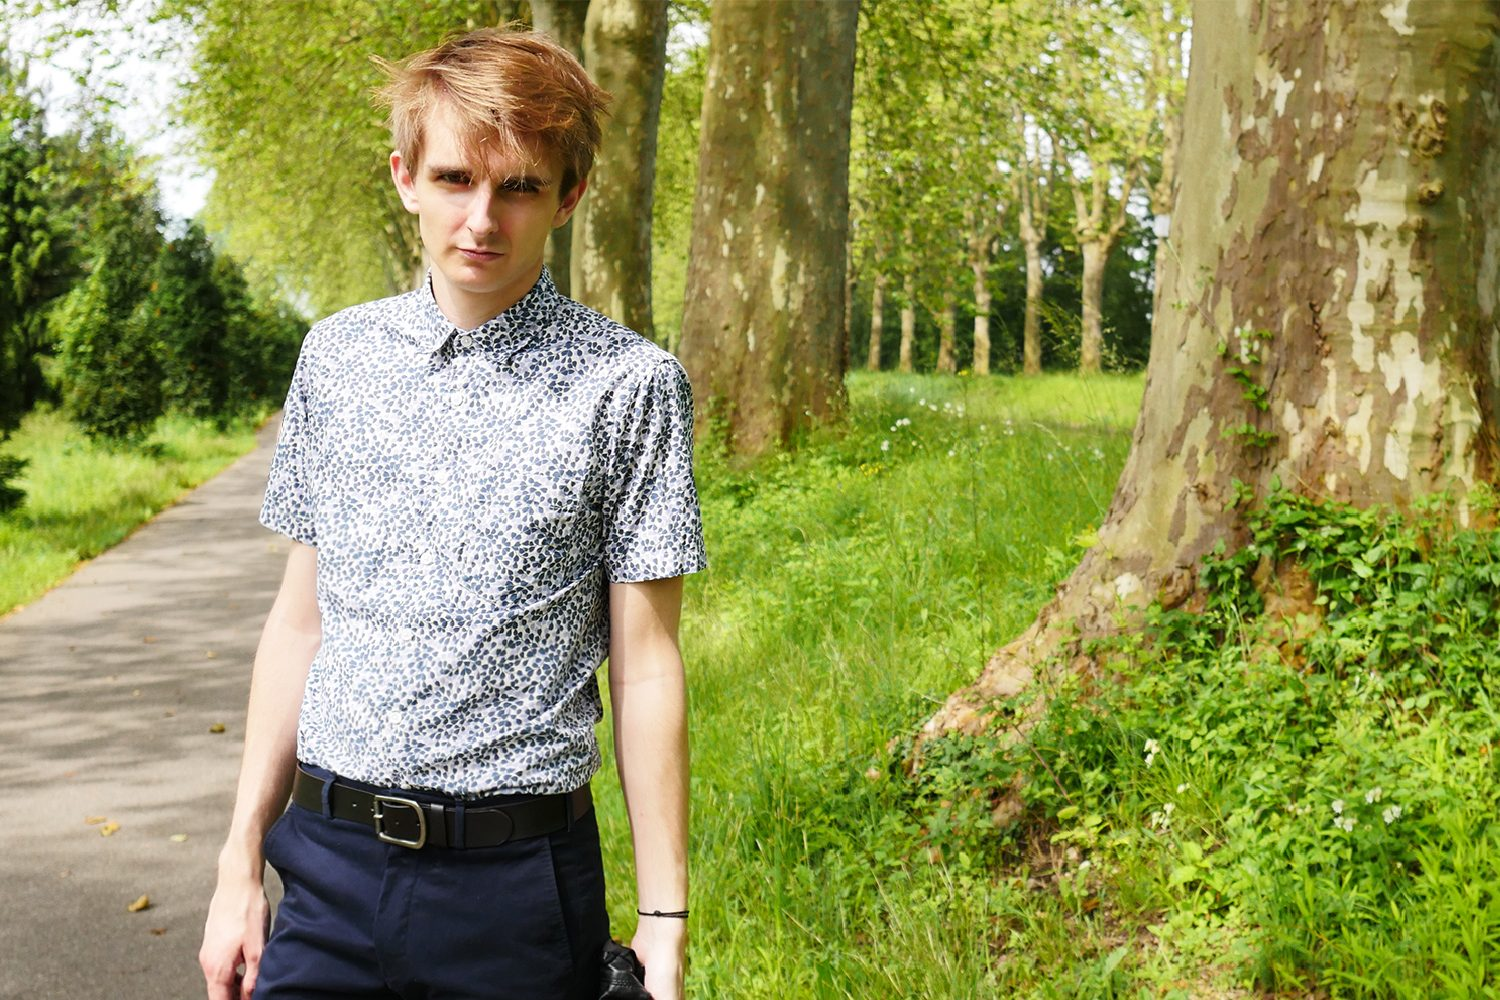 maurice-style-blog-mode-homme-blogueur-strasbourg-uniqlo-liberty-lookbook-4-2